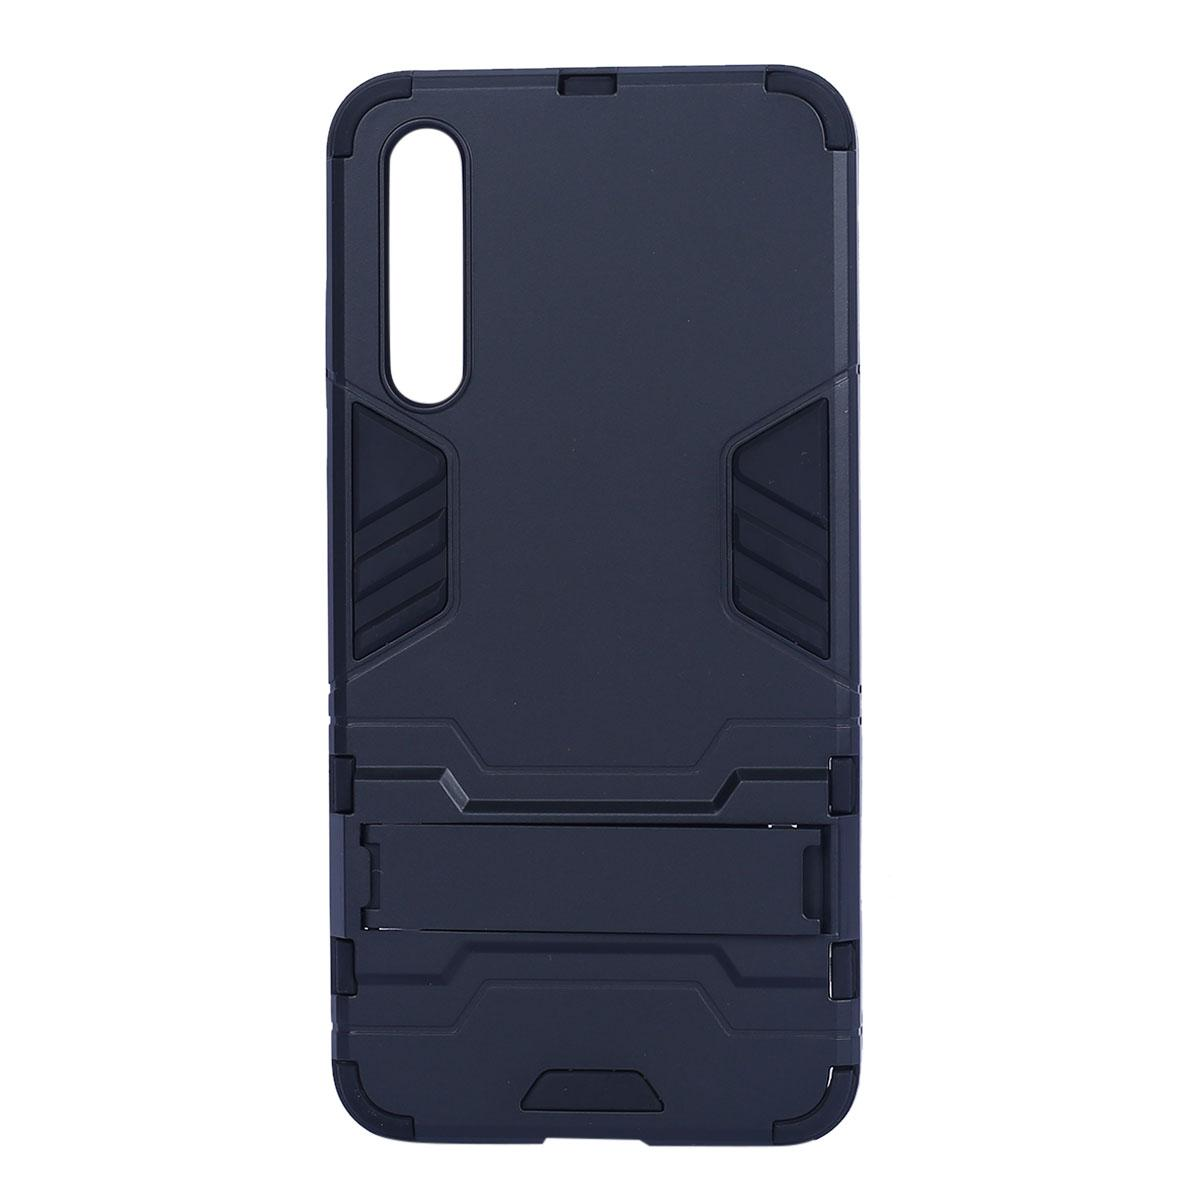 High Quality Armor Back Cover for Huawei P20 Pro -Black